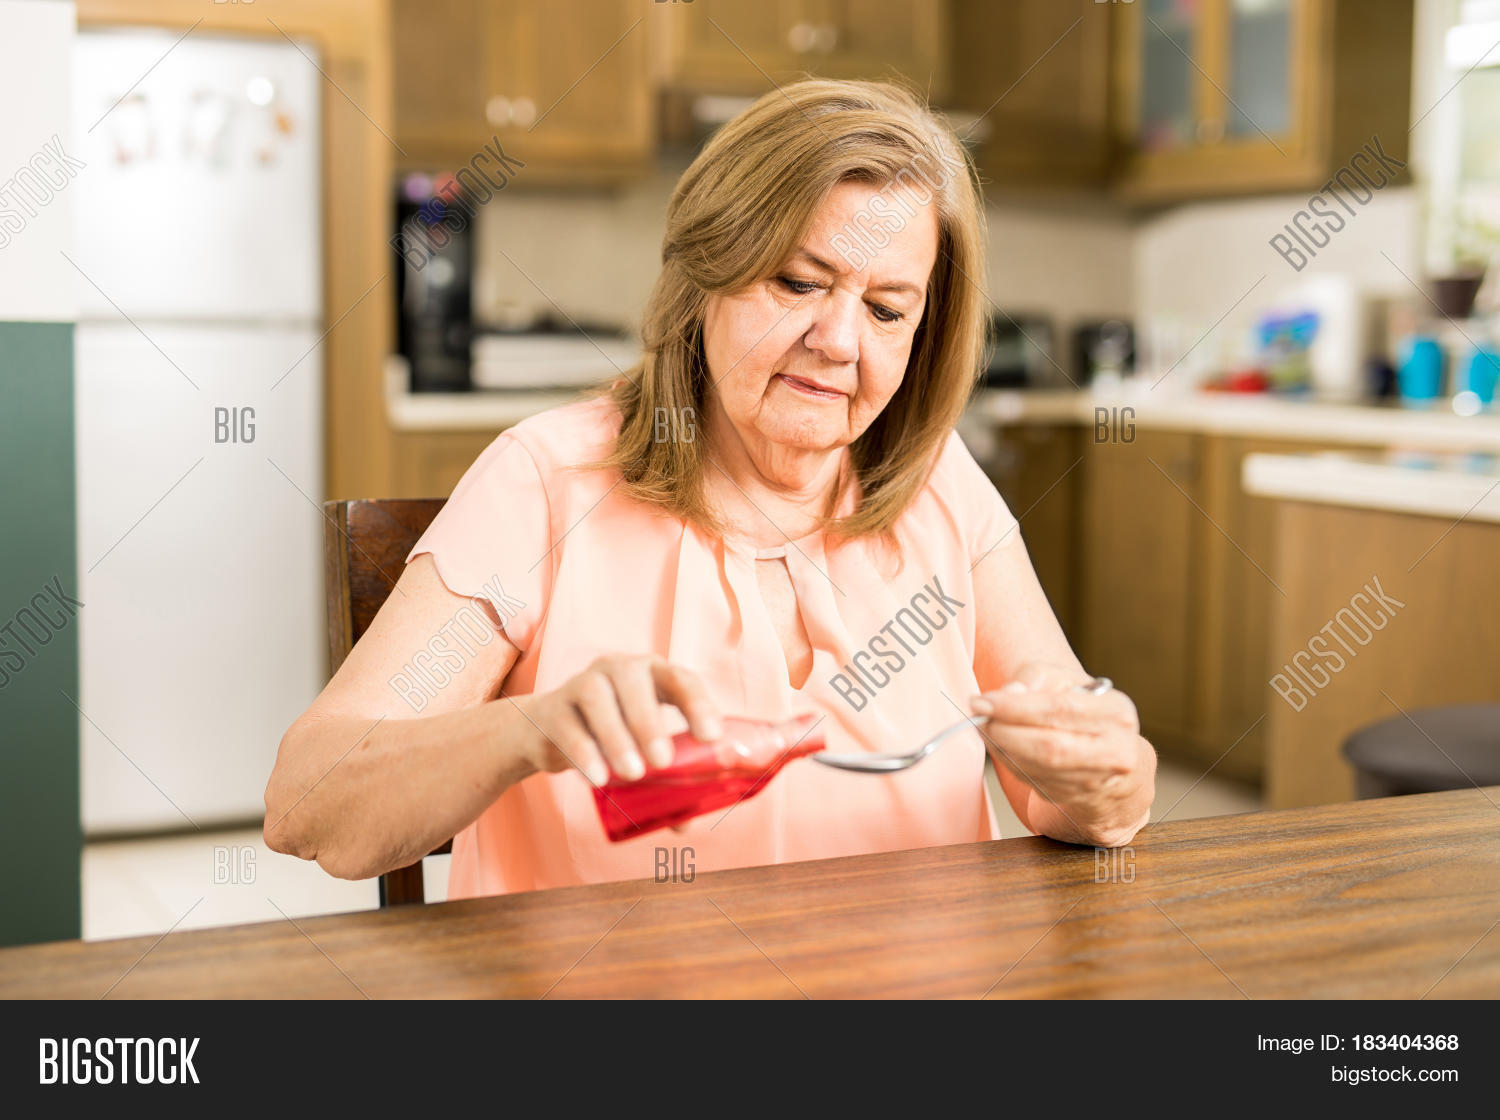 mature mom filling spoon syrup image & photo | bigstock